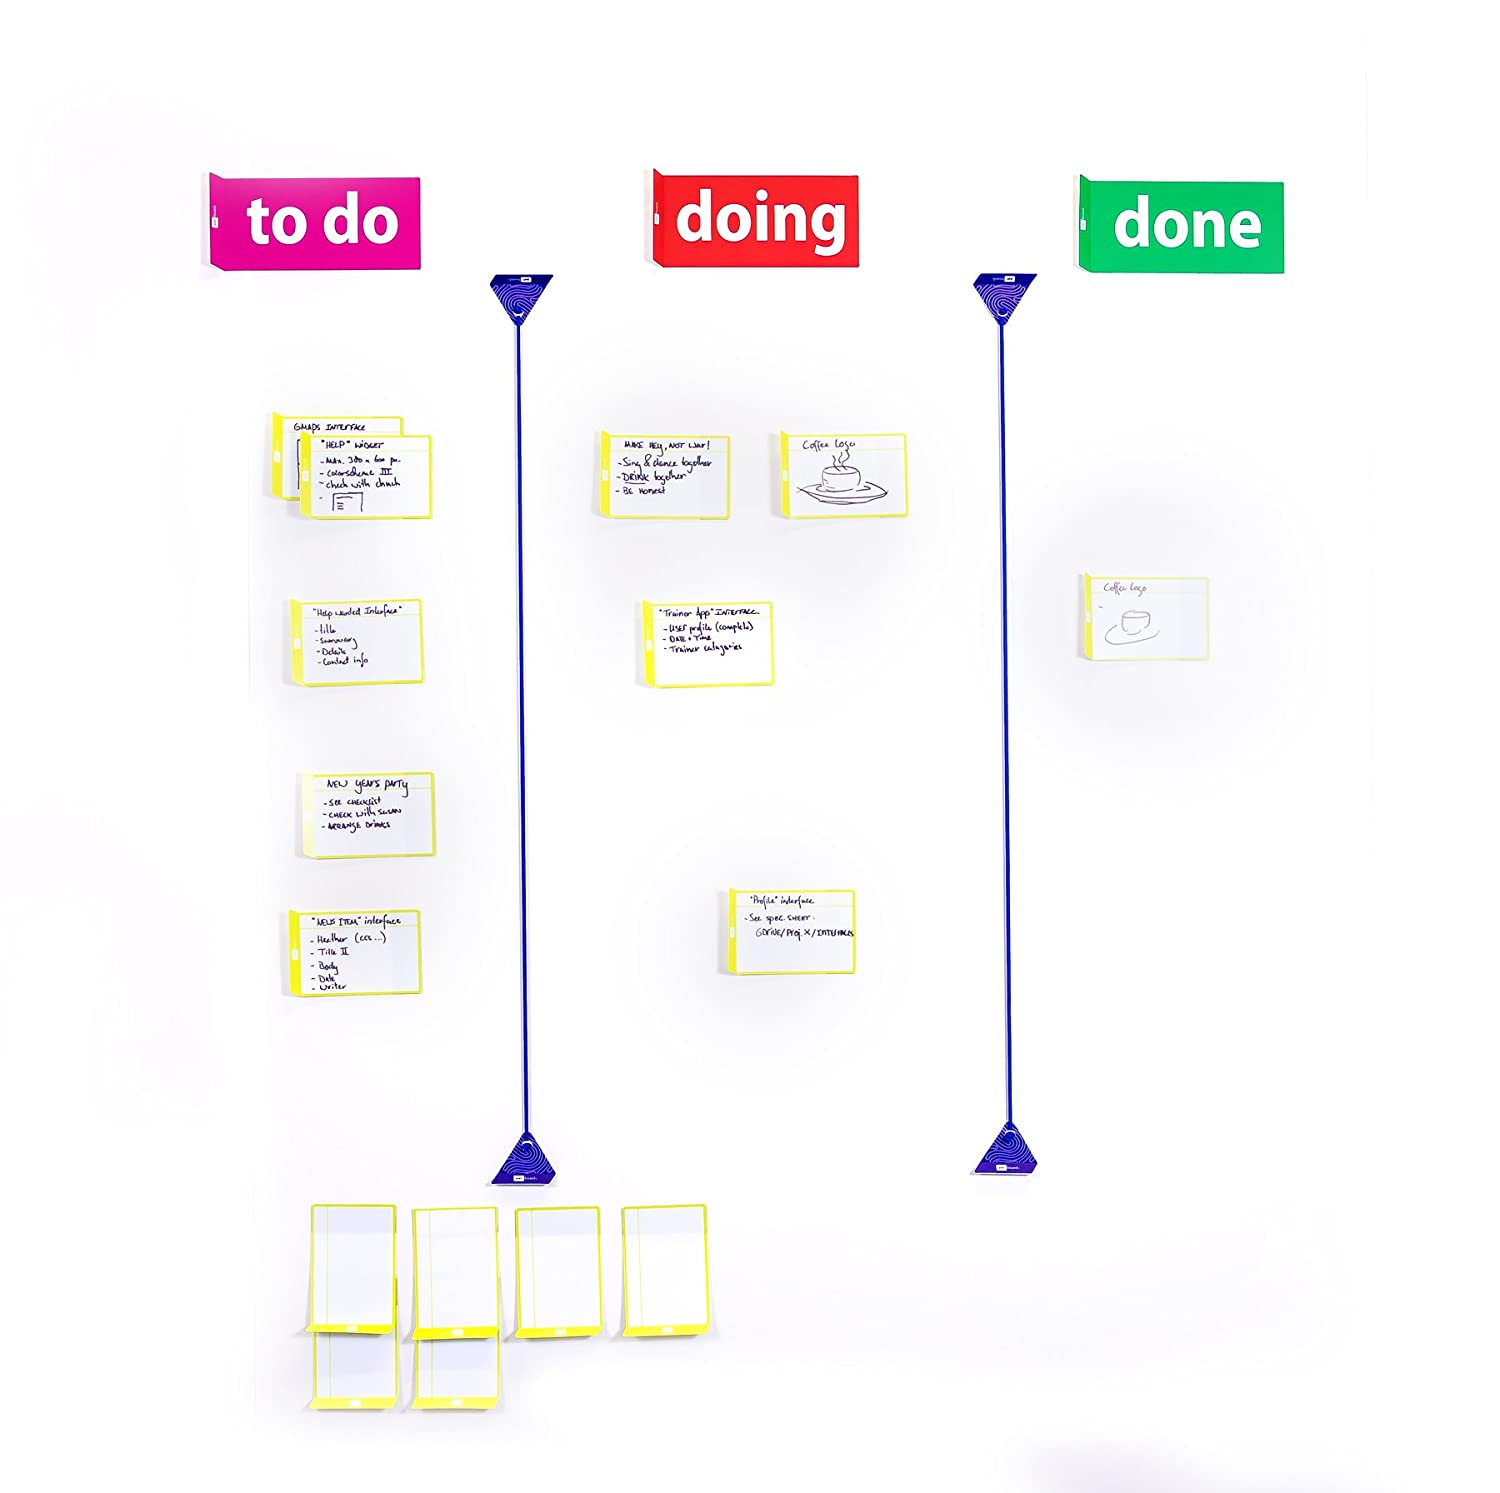 Scrum Board Home Tool Set for Agile Scrum kanban - Magnetic Planning Tools for Task Board PATboard.com